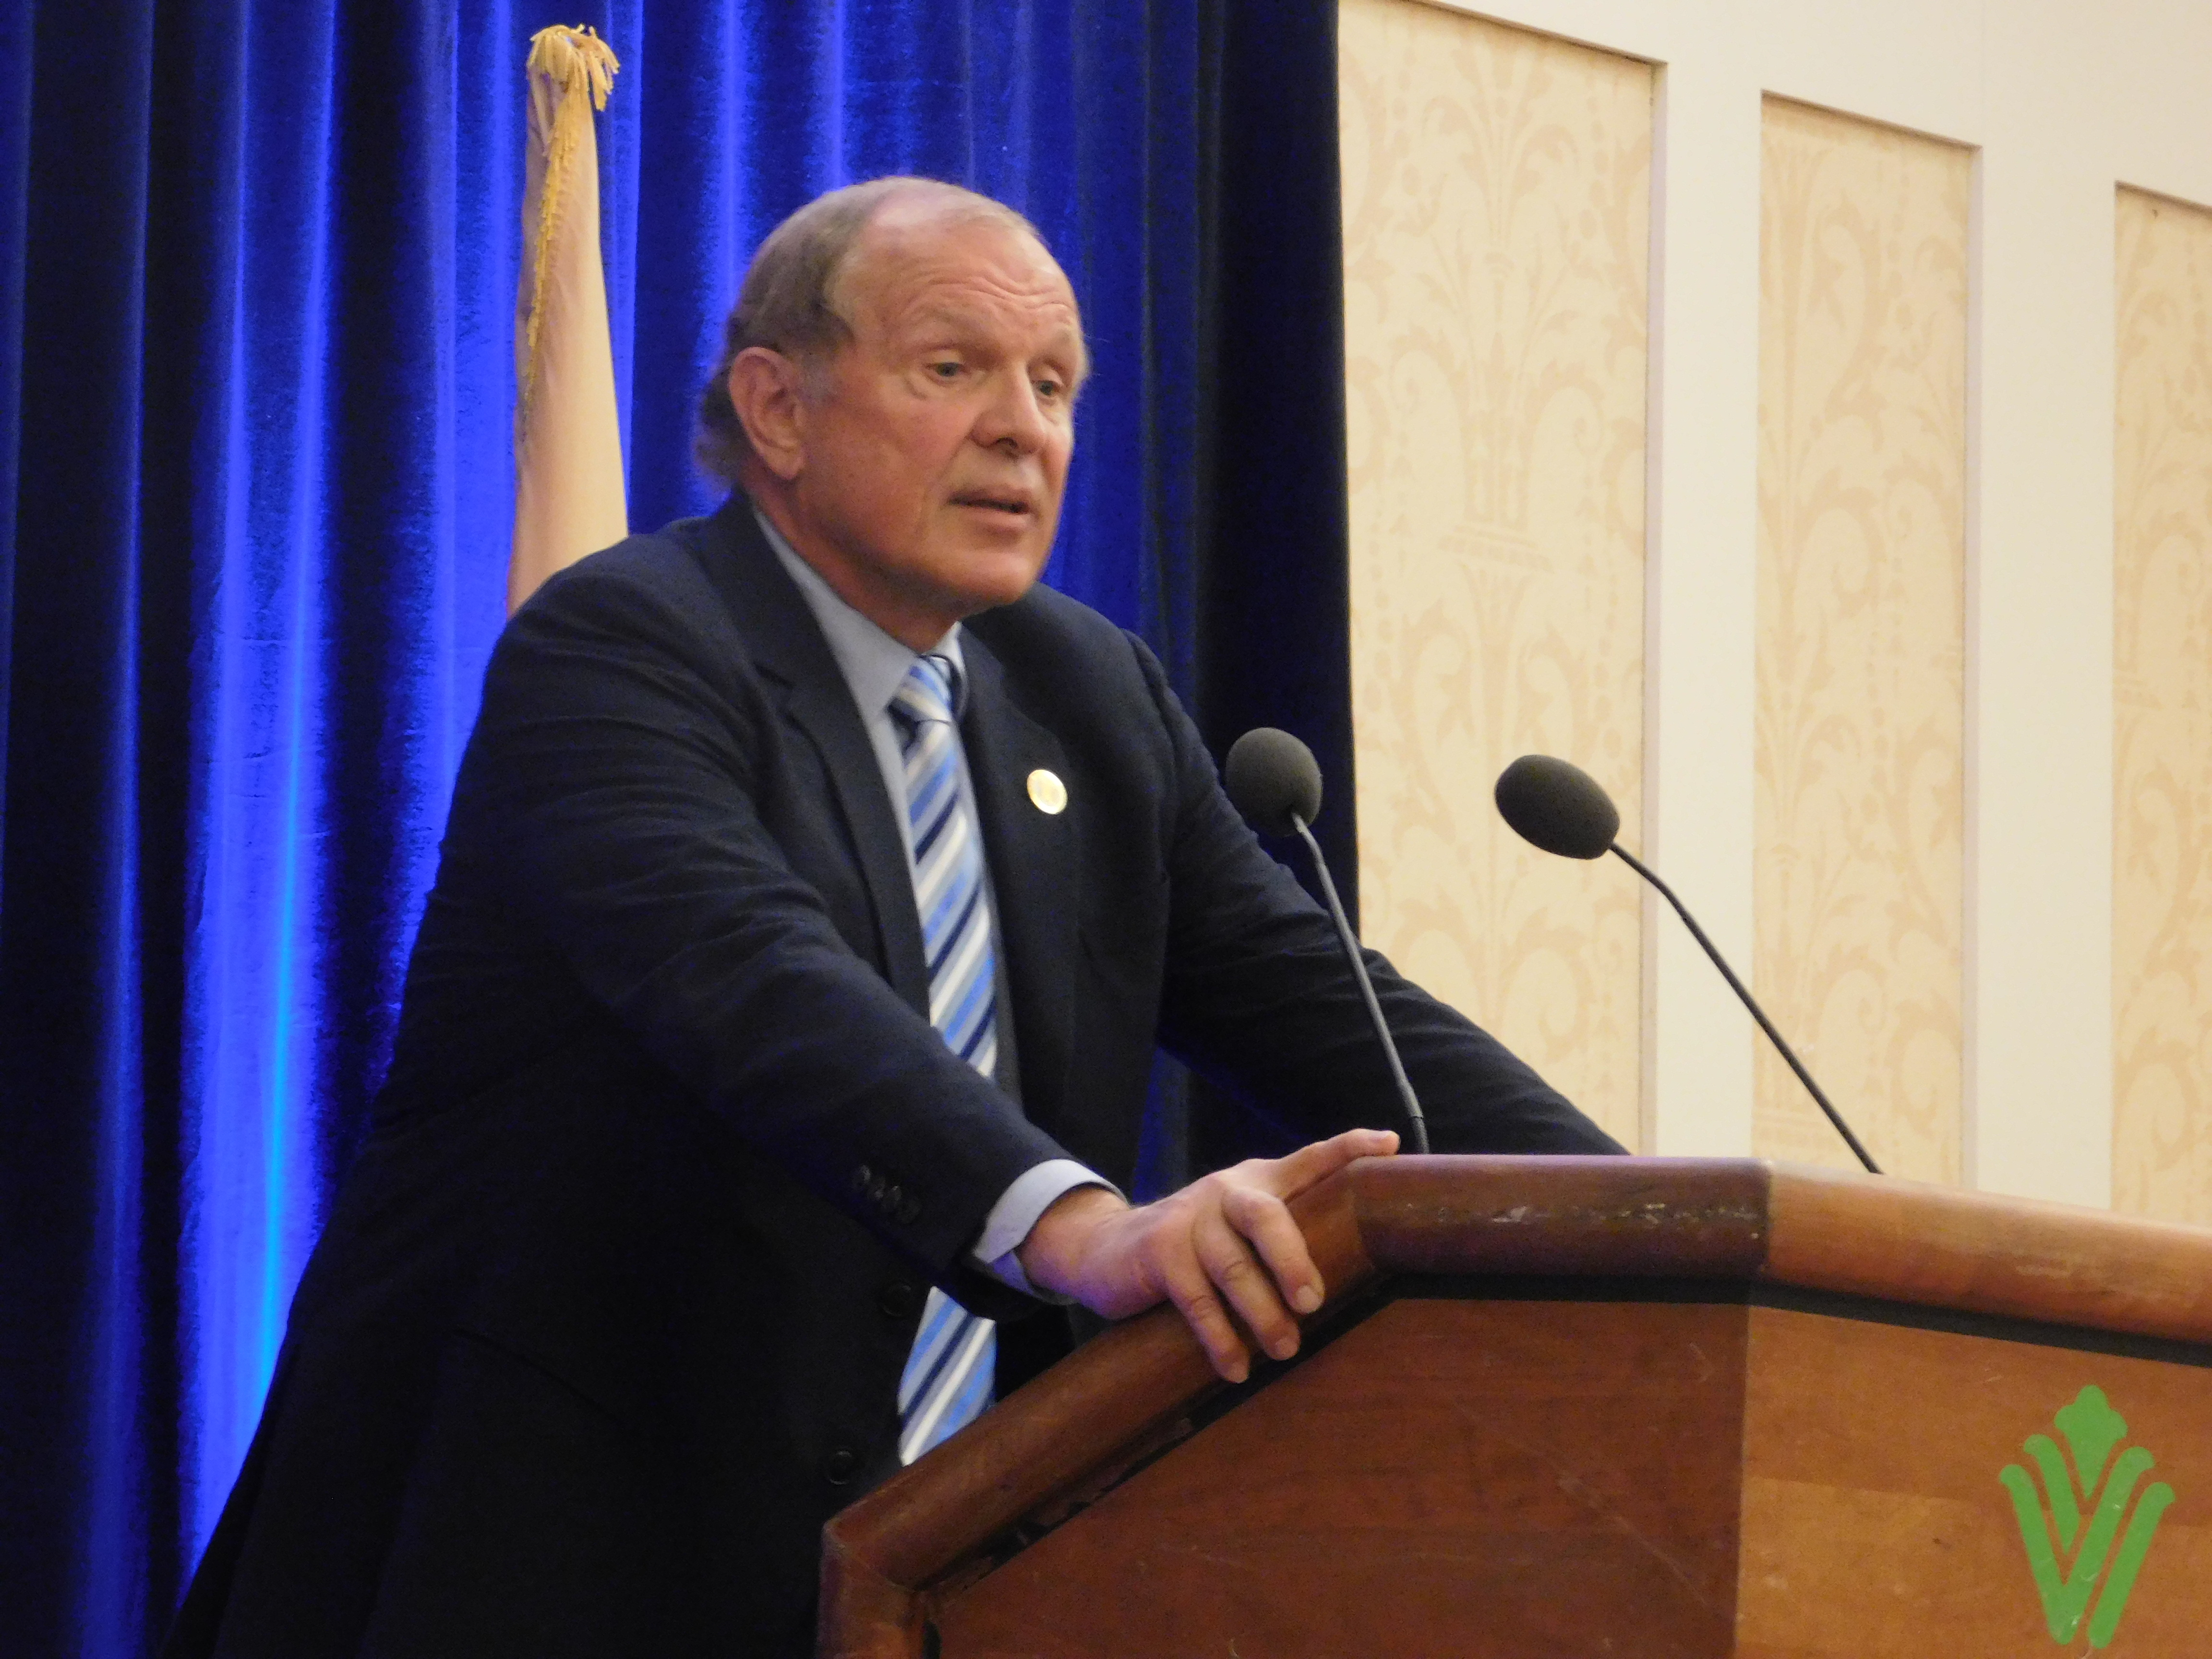 State Senator Ray Lesniak spoke ahead of Christie's State of the State.